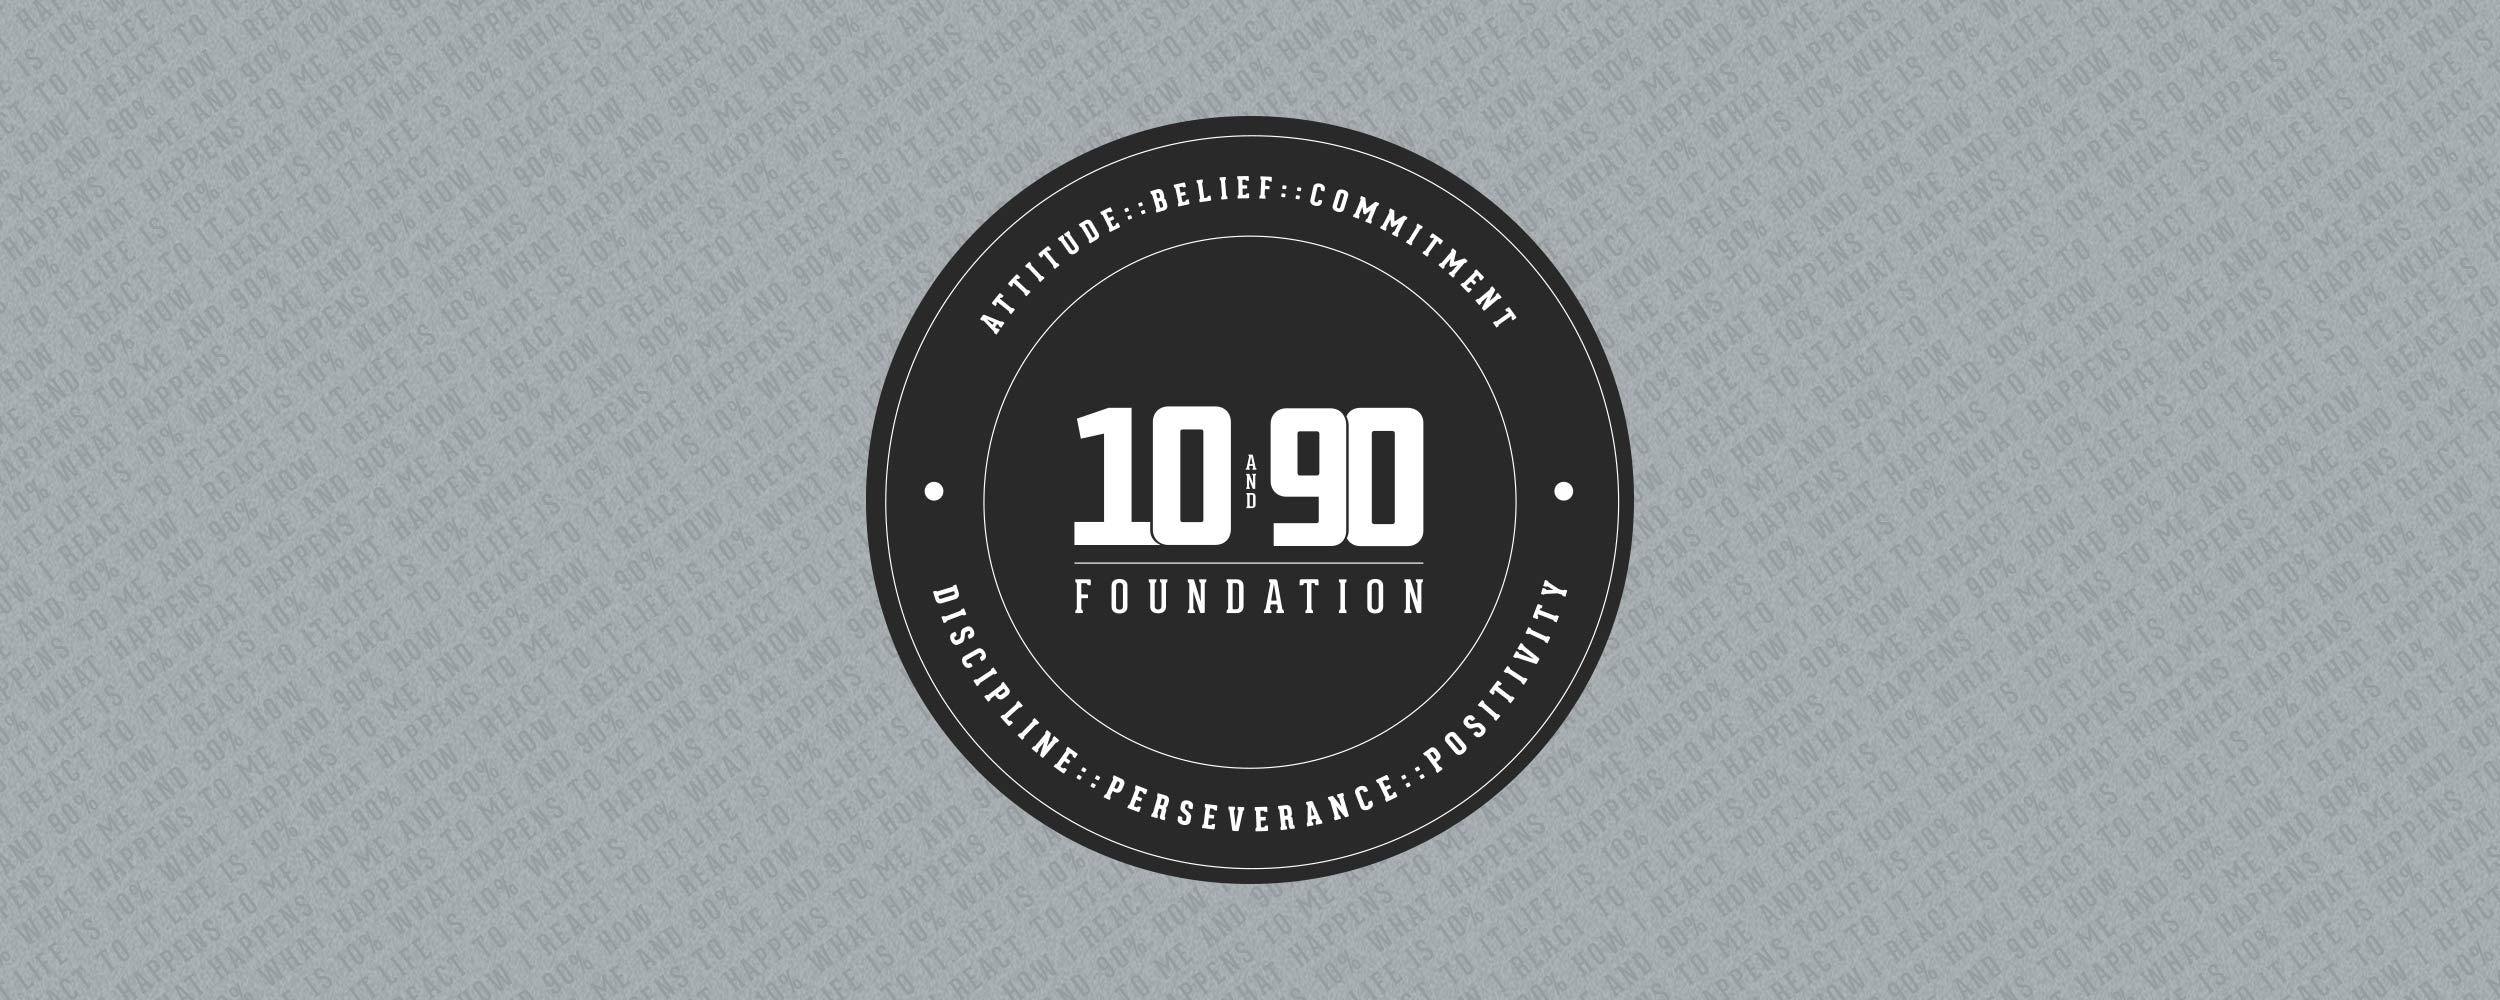 The 10 and 90 Foundation